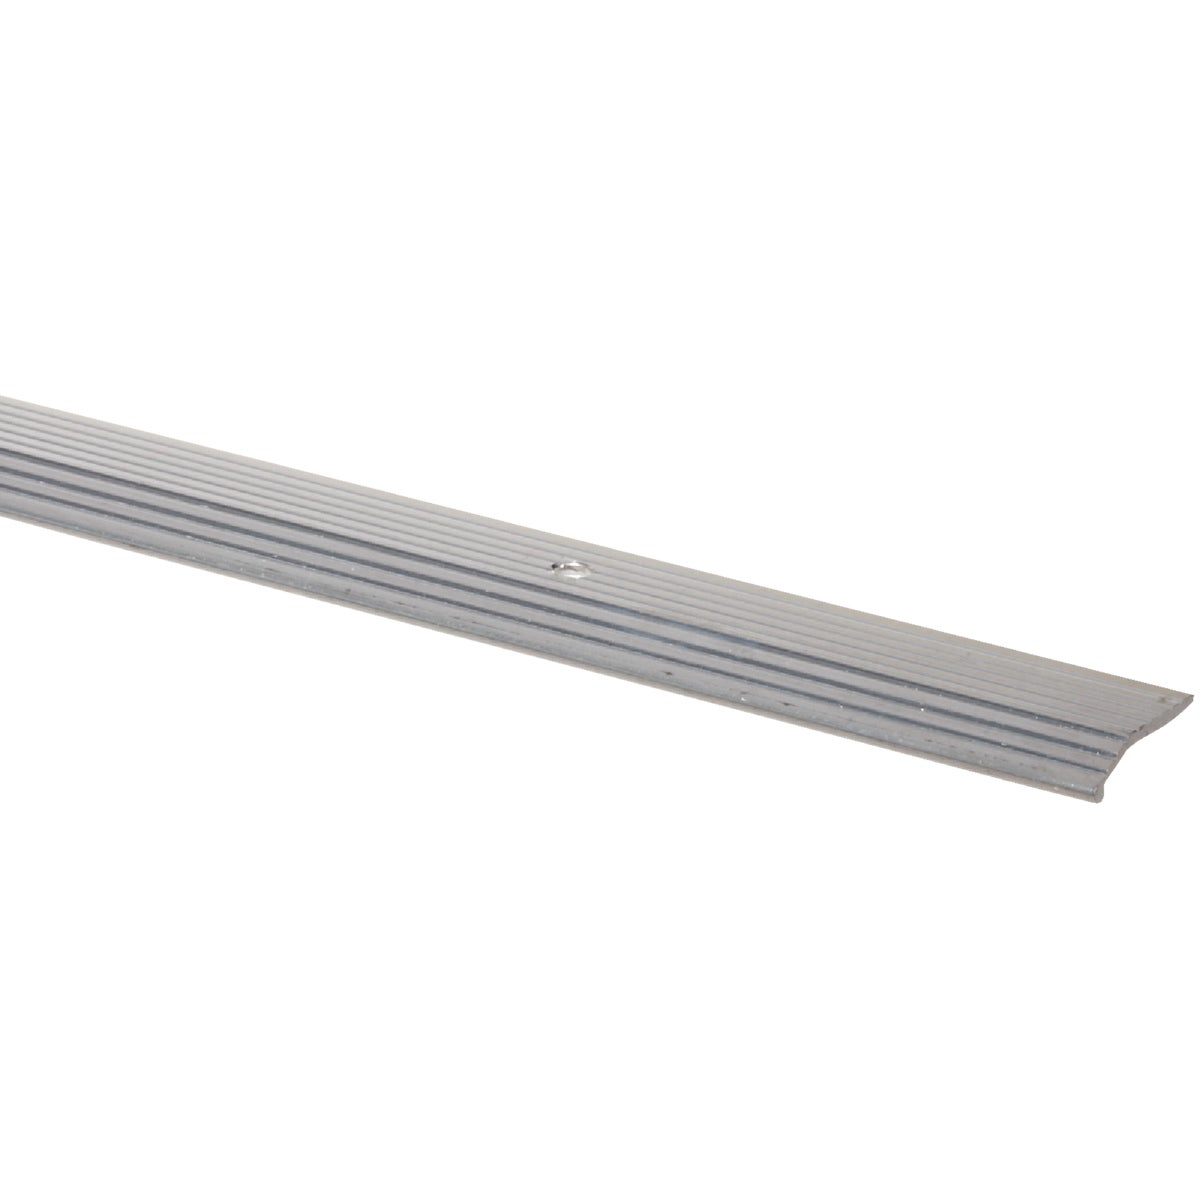 "7/8""X3' SLVR BINDER BAR - 78006 by M D Building Prod"